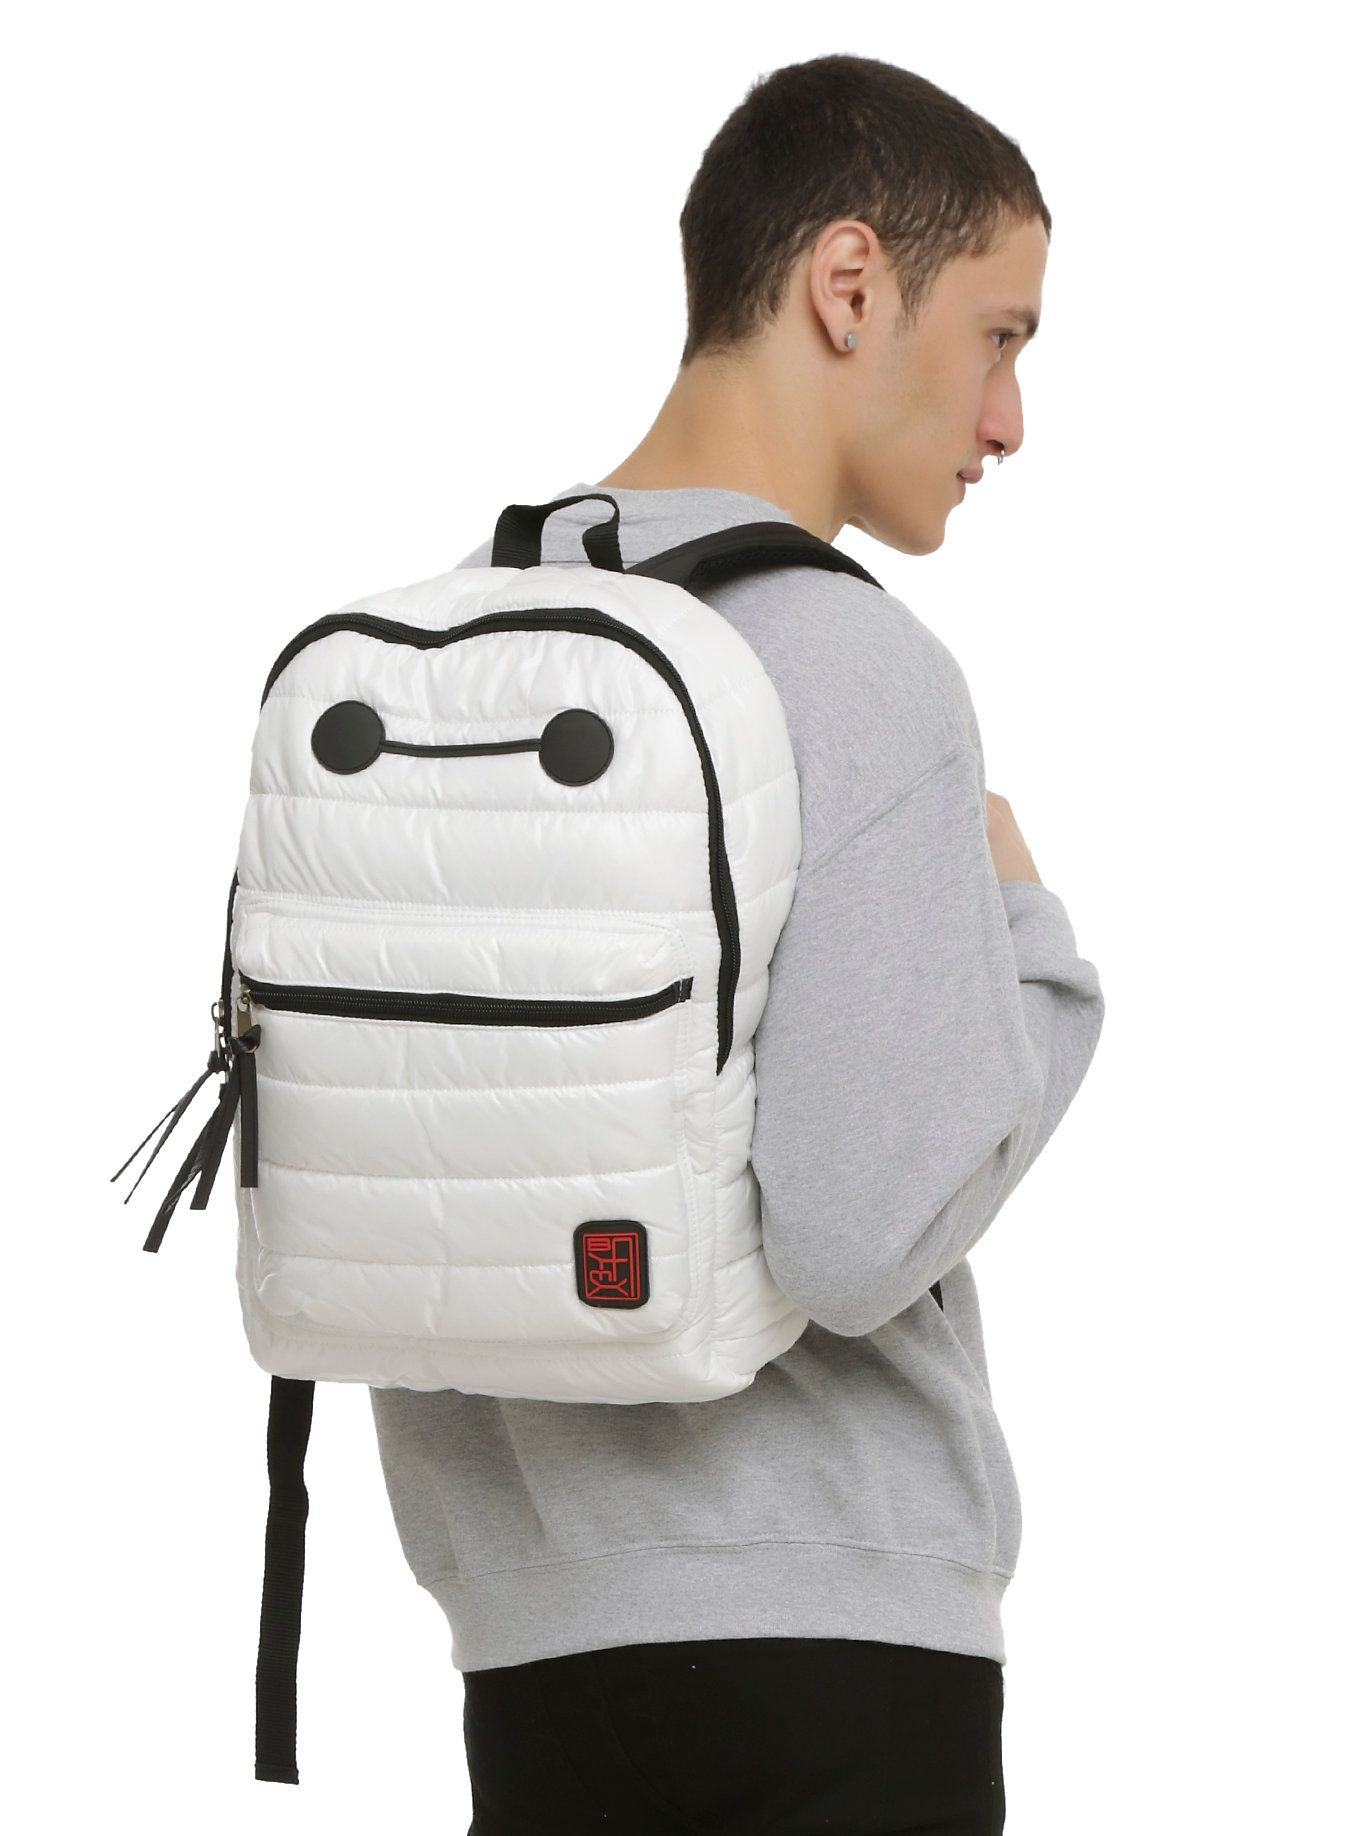 e5e738649c 11 Disney Backpacks To Up Your Accessories Game